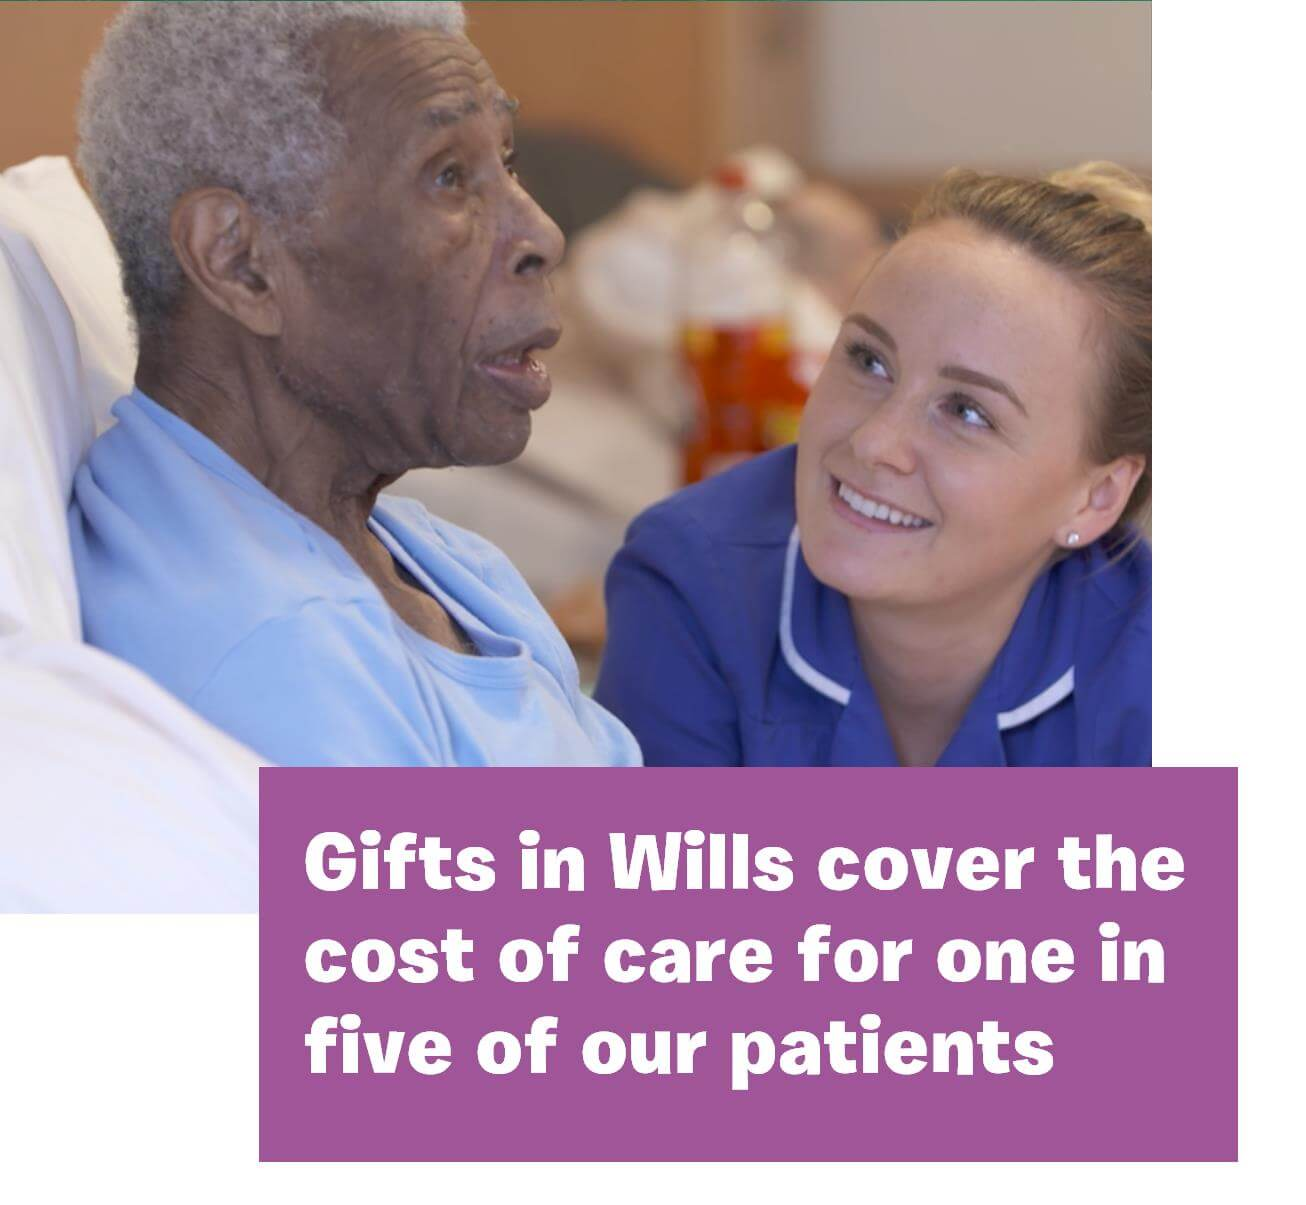 Nurse smiling at Patient - Gifts in Wills